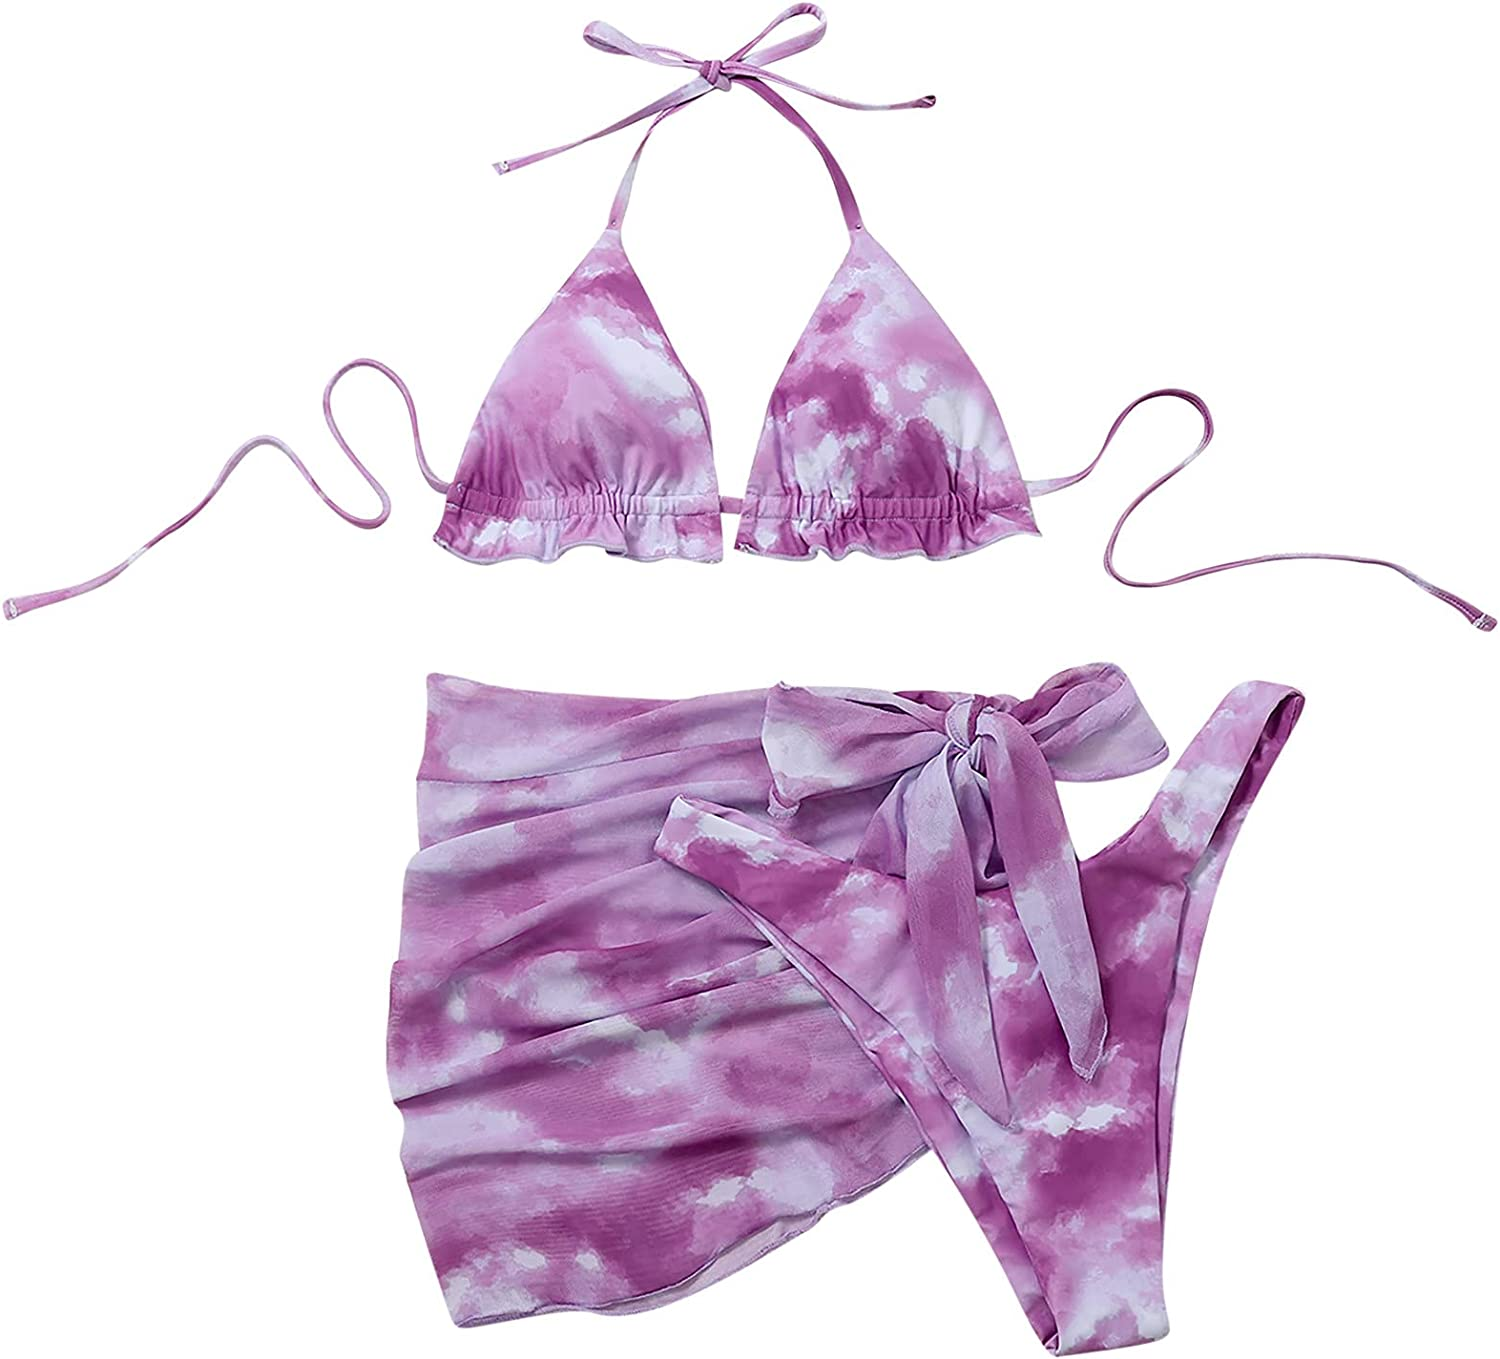 Bikini Set Swimsuit for Women, Tie Dye 3 Pieces Set with Sarongs Cover Ups Beach Skirt Bathing Suit